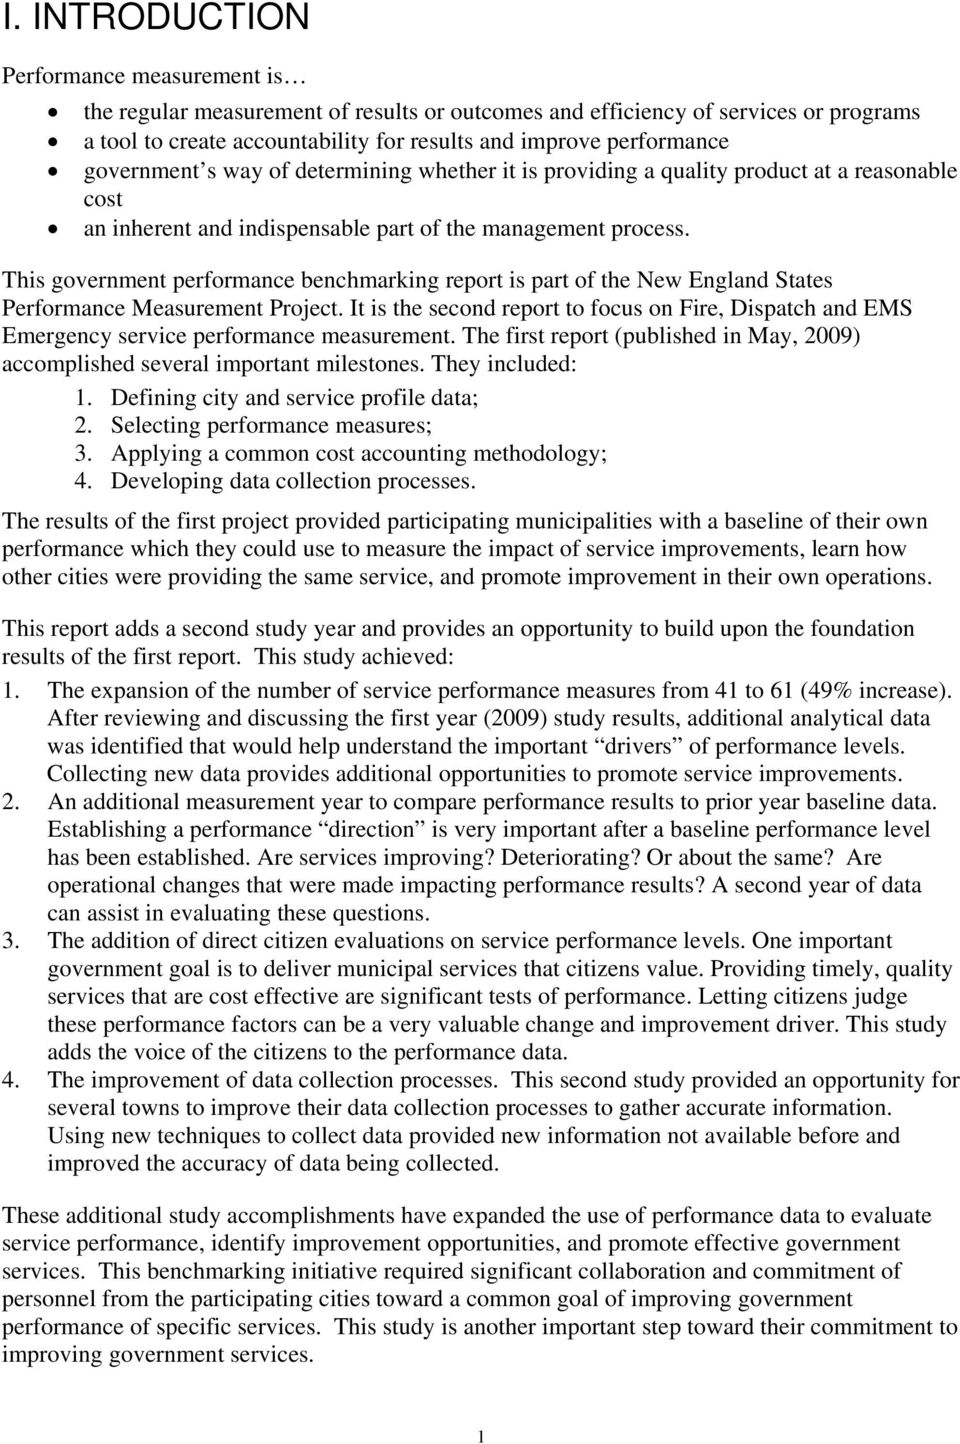 This government performance benchmarking report is part of the New England States Performance Measurement Project.